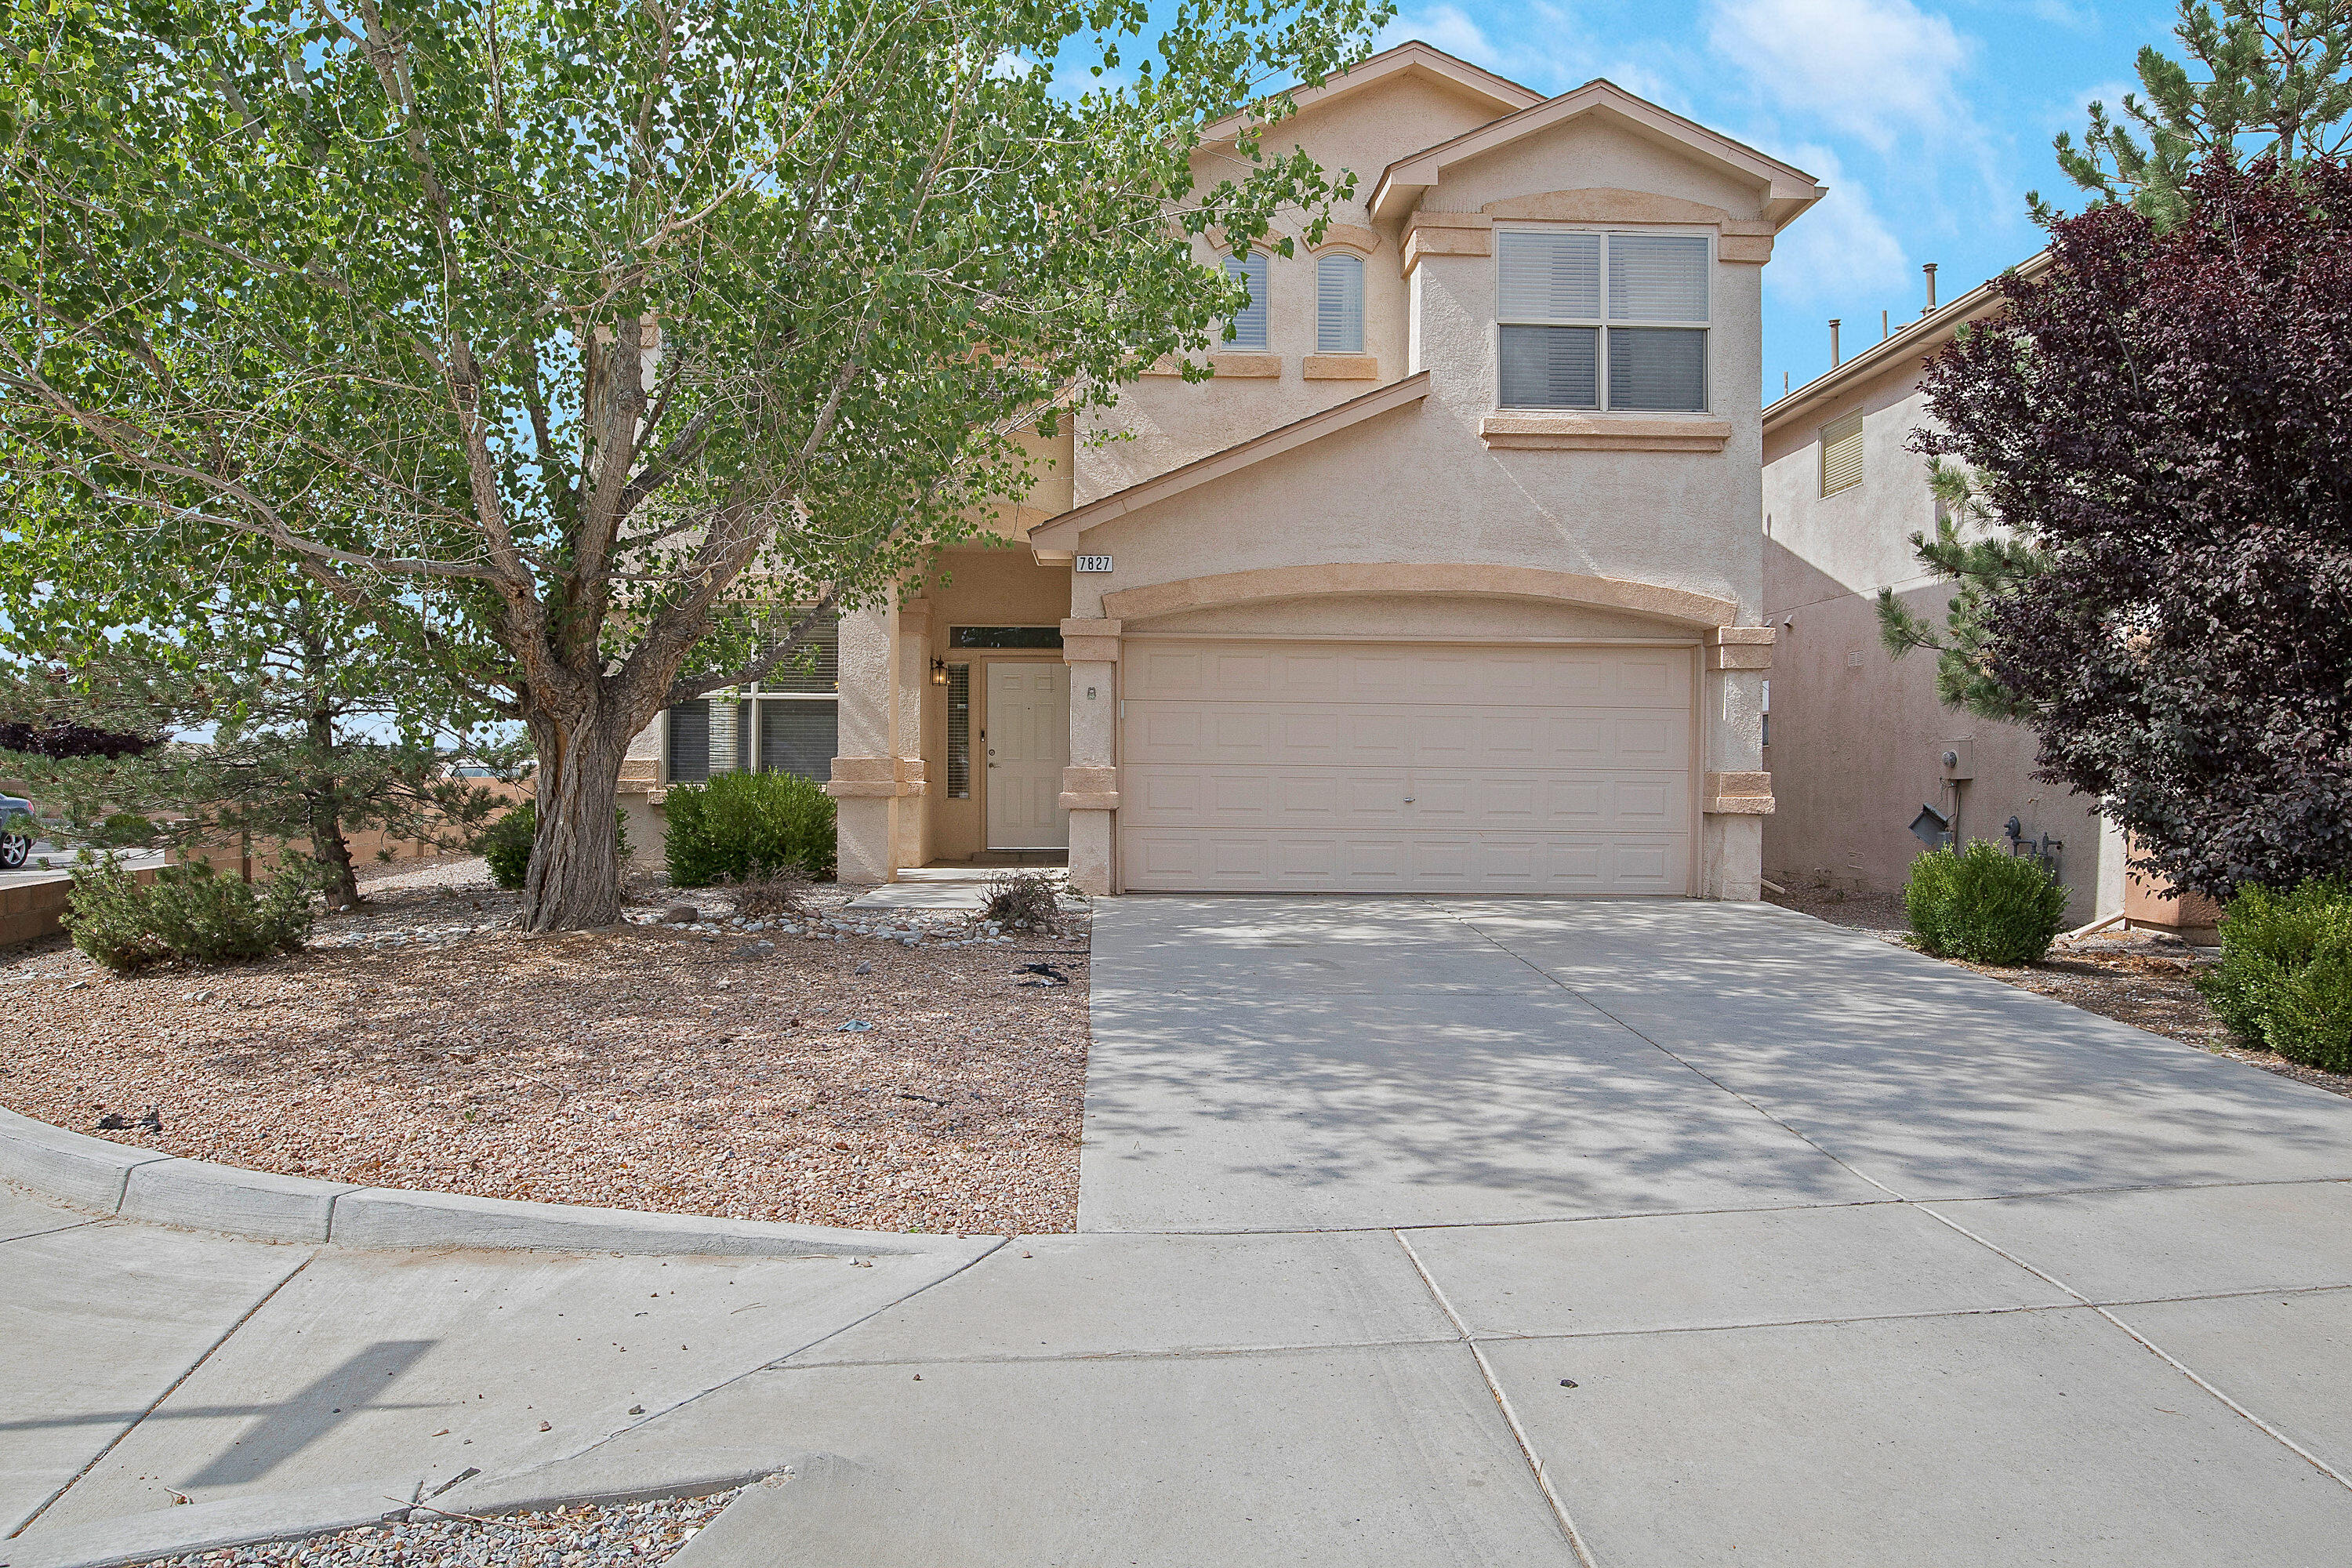 So much space! This spacious home is tucked on a corner lot framed by lovely mature trees. The tile entry opens to a large great room with the versatility to have formal dining as well. The open kitchen has tons of counter space plus an island and is adjacent to a great spot for casual dining. There is an adjacent great family room with a cozy fireplace. Definitely a great gathering spot in the heart of the home.  Don't miss the great storage downstairs cleverly tucked under the stairs plus a full laundry room and a powder room.  Head upstairs to four wonderful bedrooms and yet another living space! The upstairs living area offers many use options plus it opens to a second floor deck with expansive views. The primary bedroom is huge, 228 sq ft plus a full bath and large walk in closet.